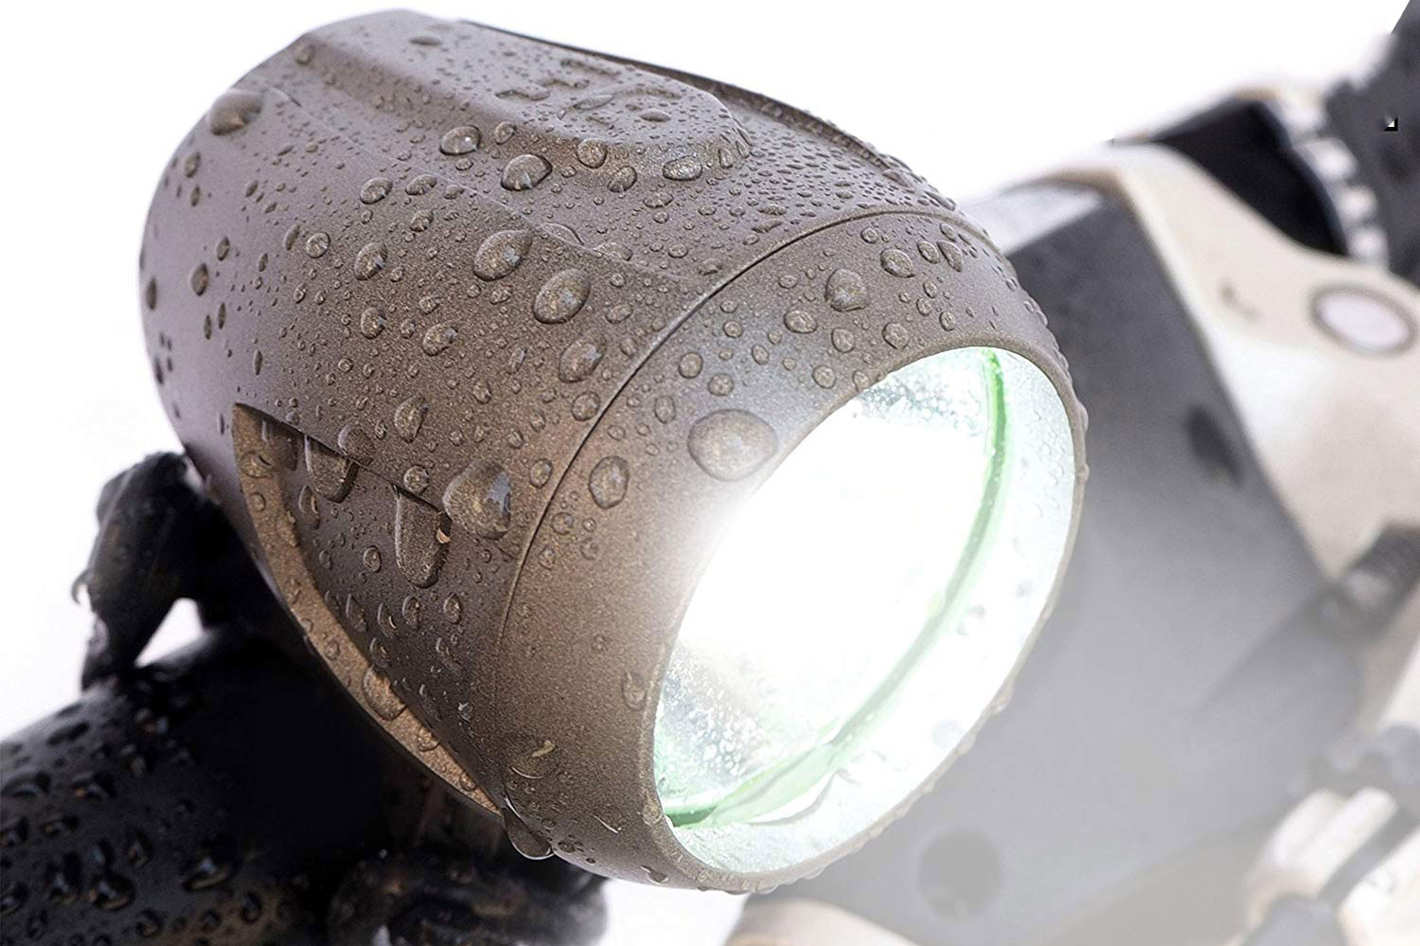 Bright Eyes Newly Upgraded and Fully Waterproof 1200 Lumen Rechargeable Bike Headlight